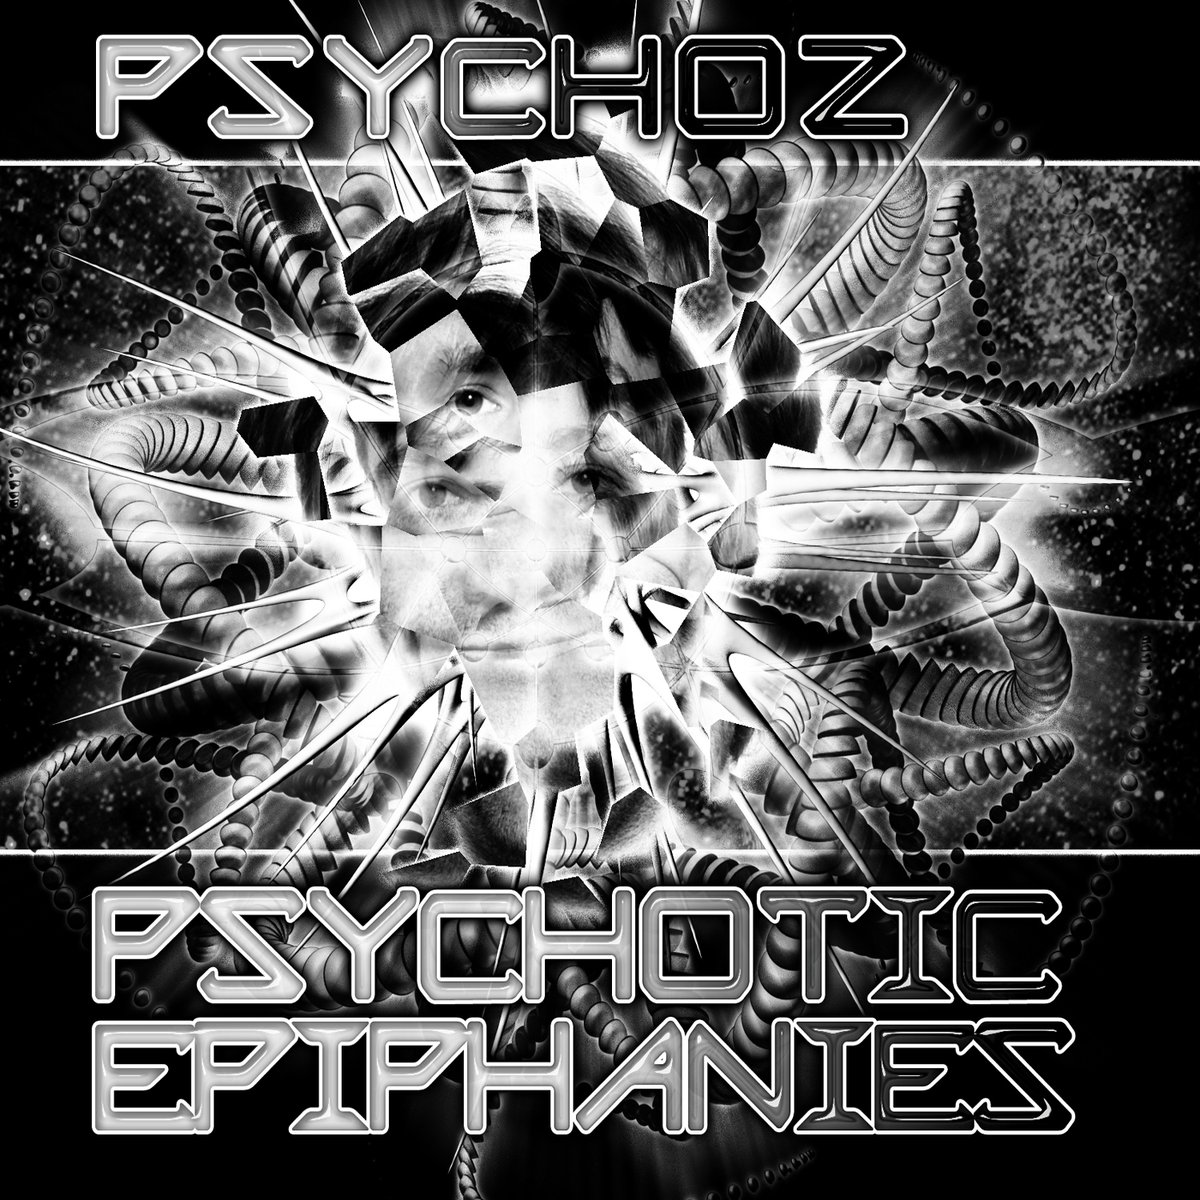 Psychoz - Right Now @ 'Psychotic Epiphanies' album (electronic, goa)